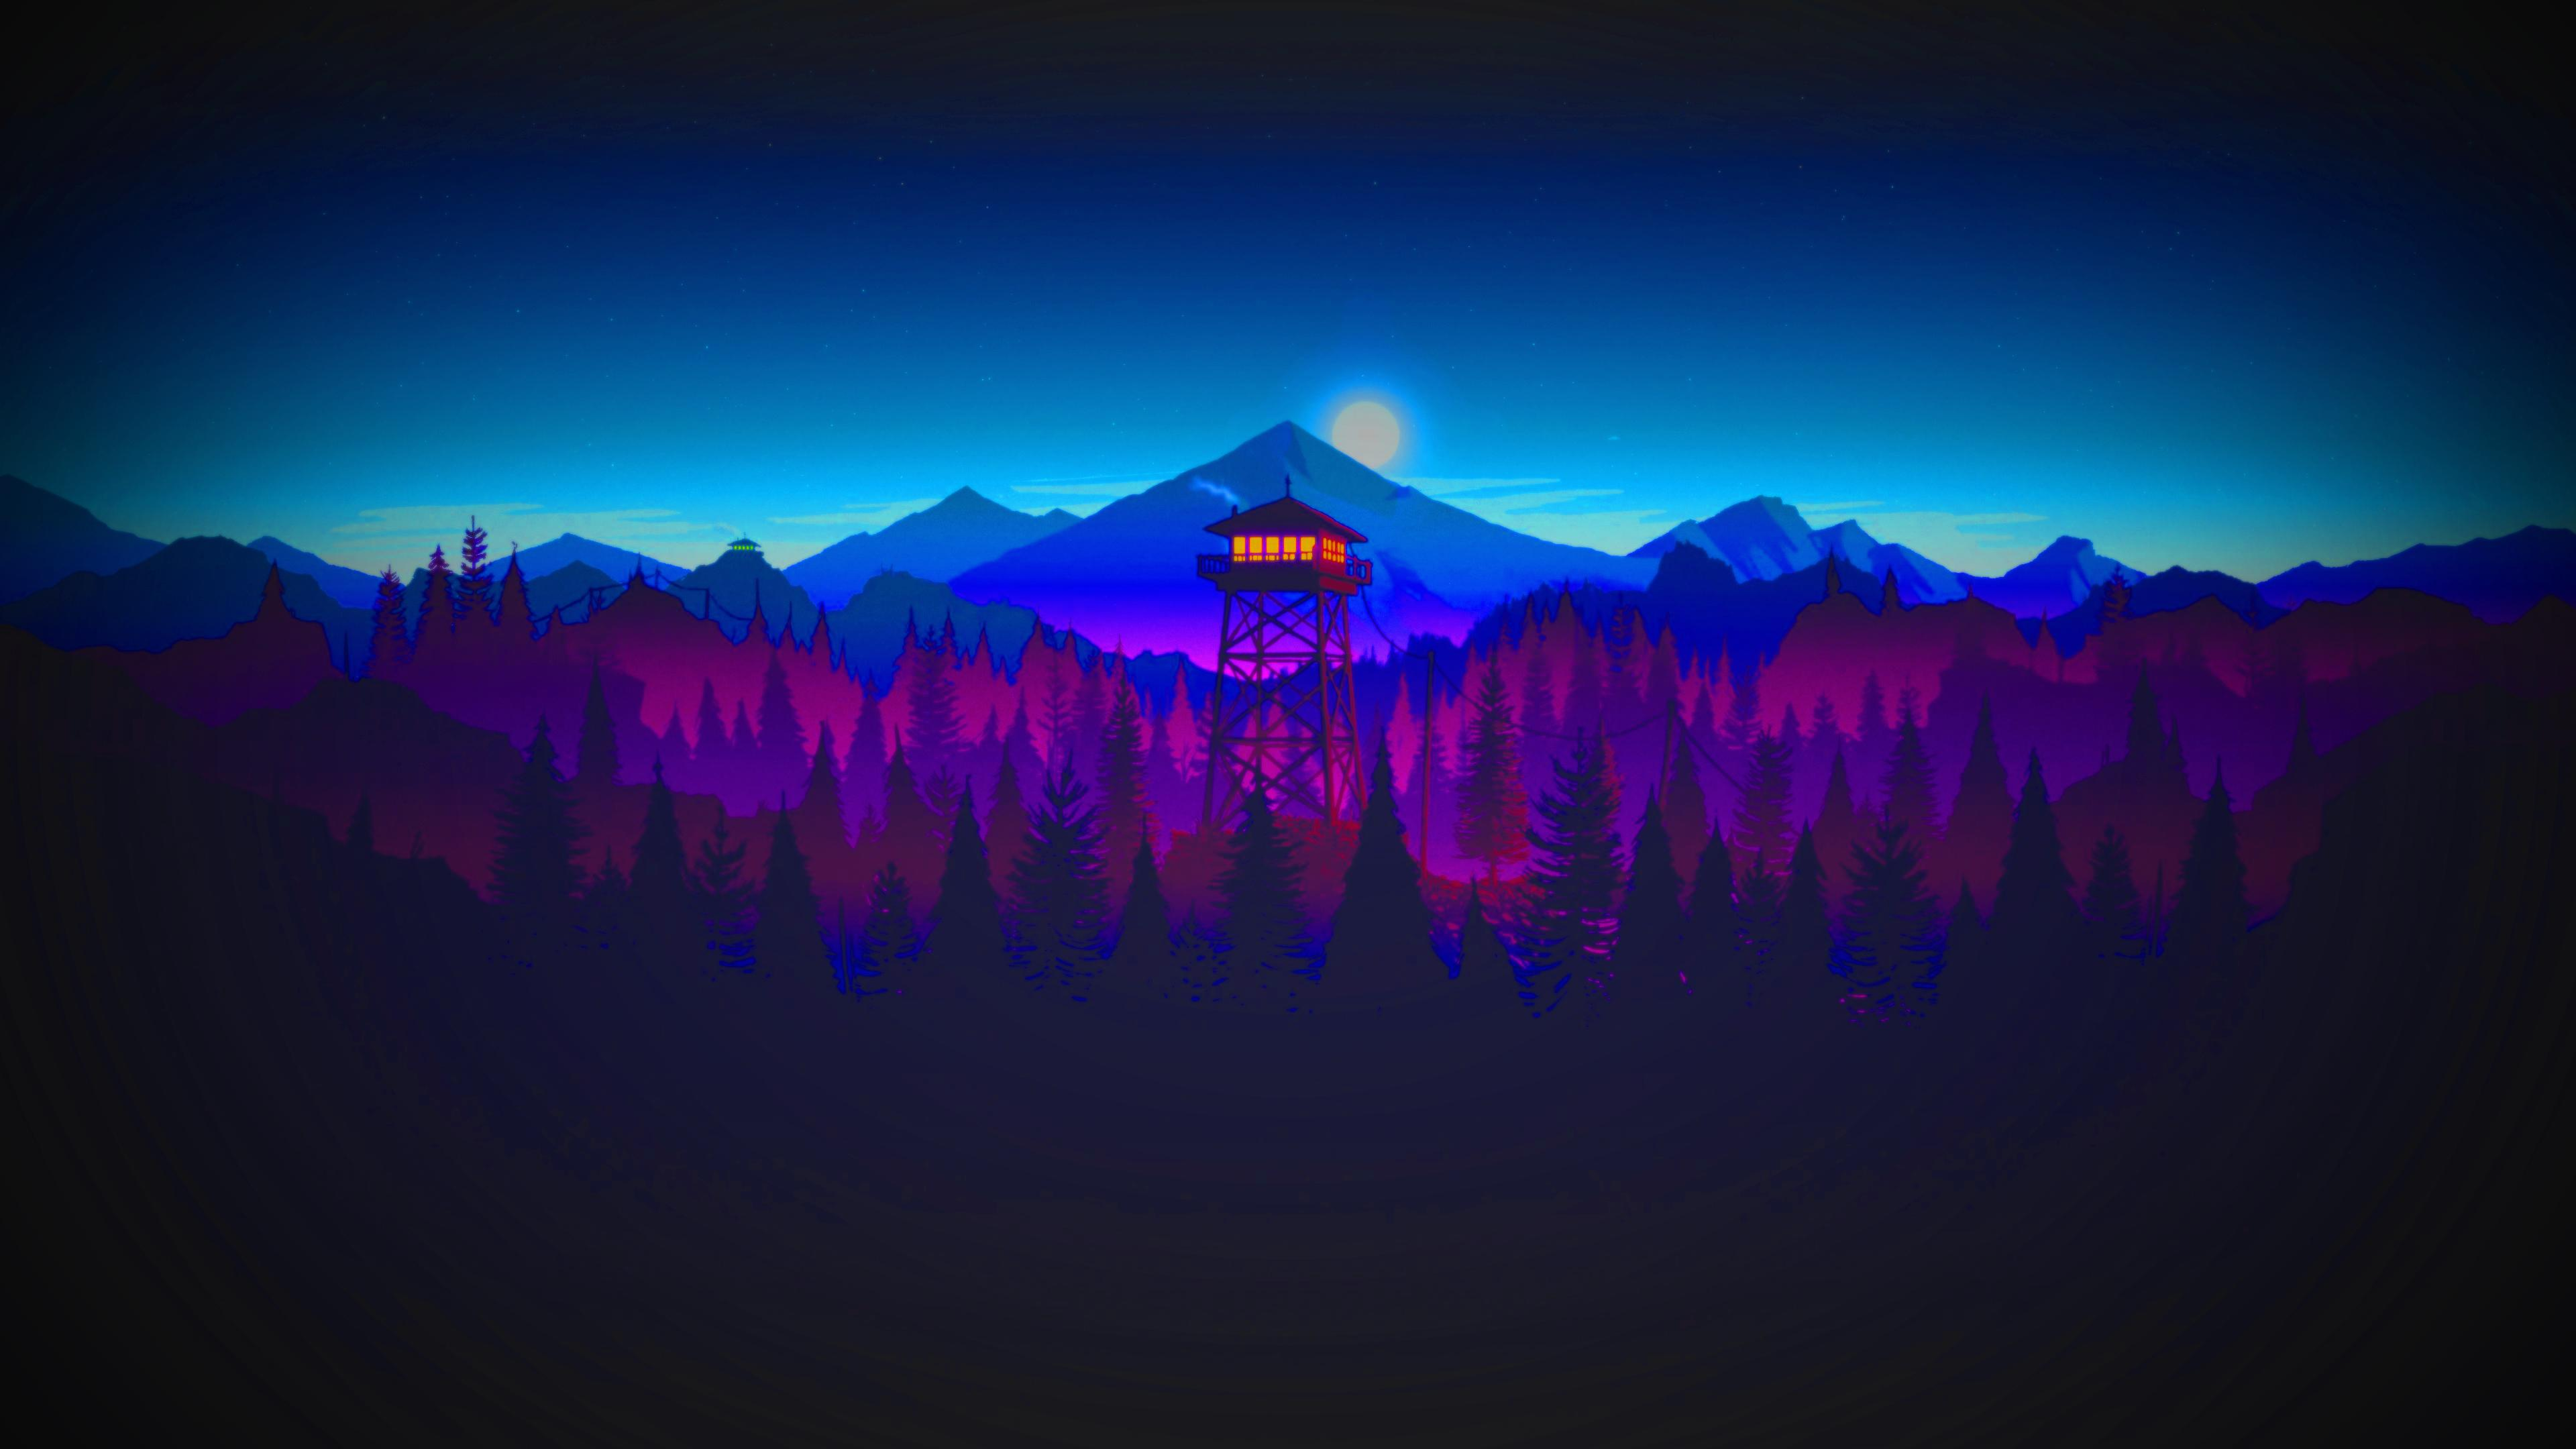 Firewatch 4k wallpapers for your desktop or mobile screen - Desktop wallpaper 4k ...